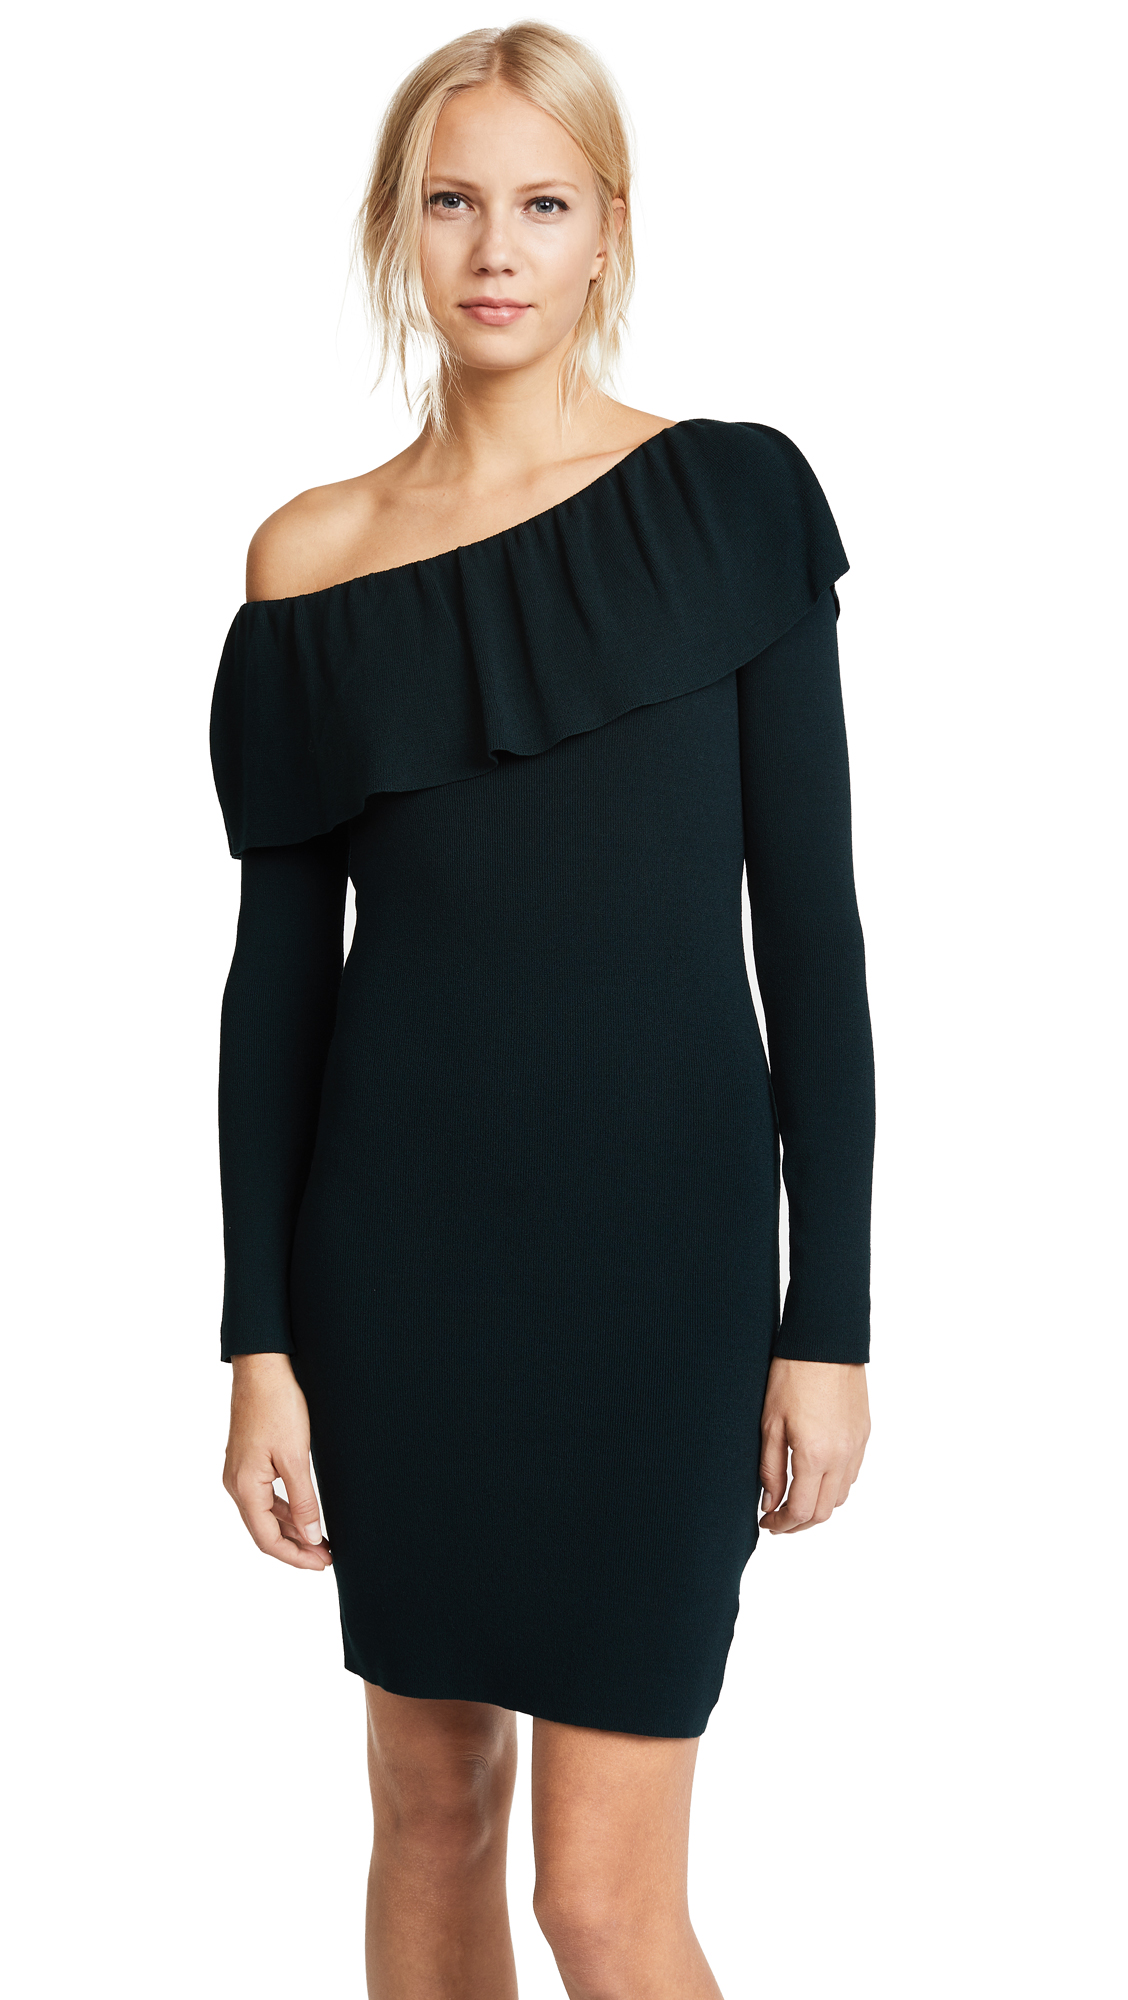 Club Monaco Tanellie Sweater Dress - Dark Rosemary